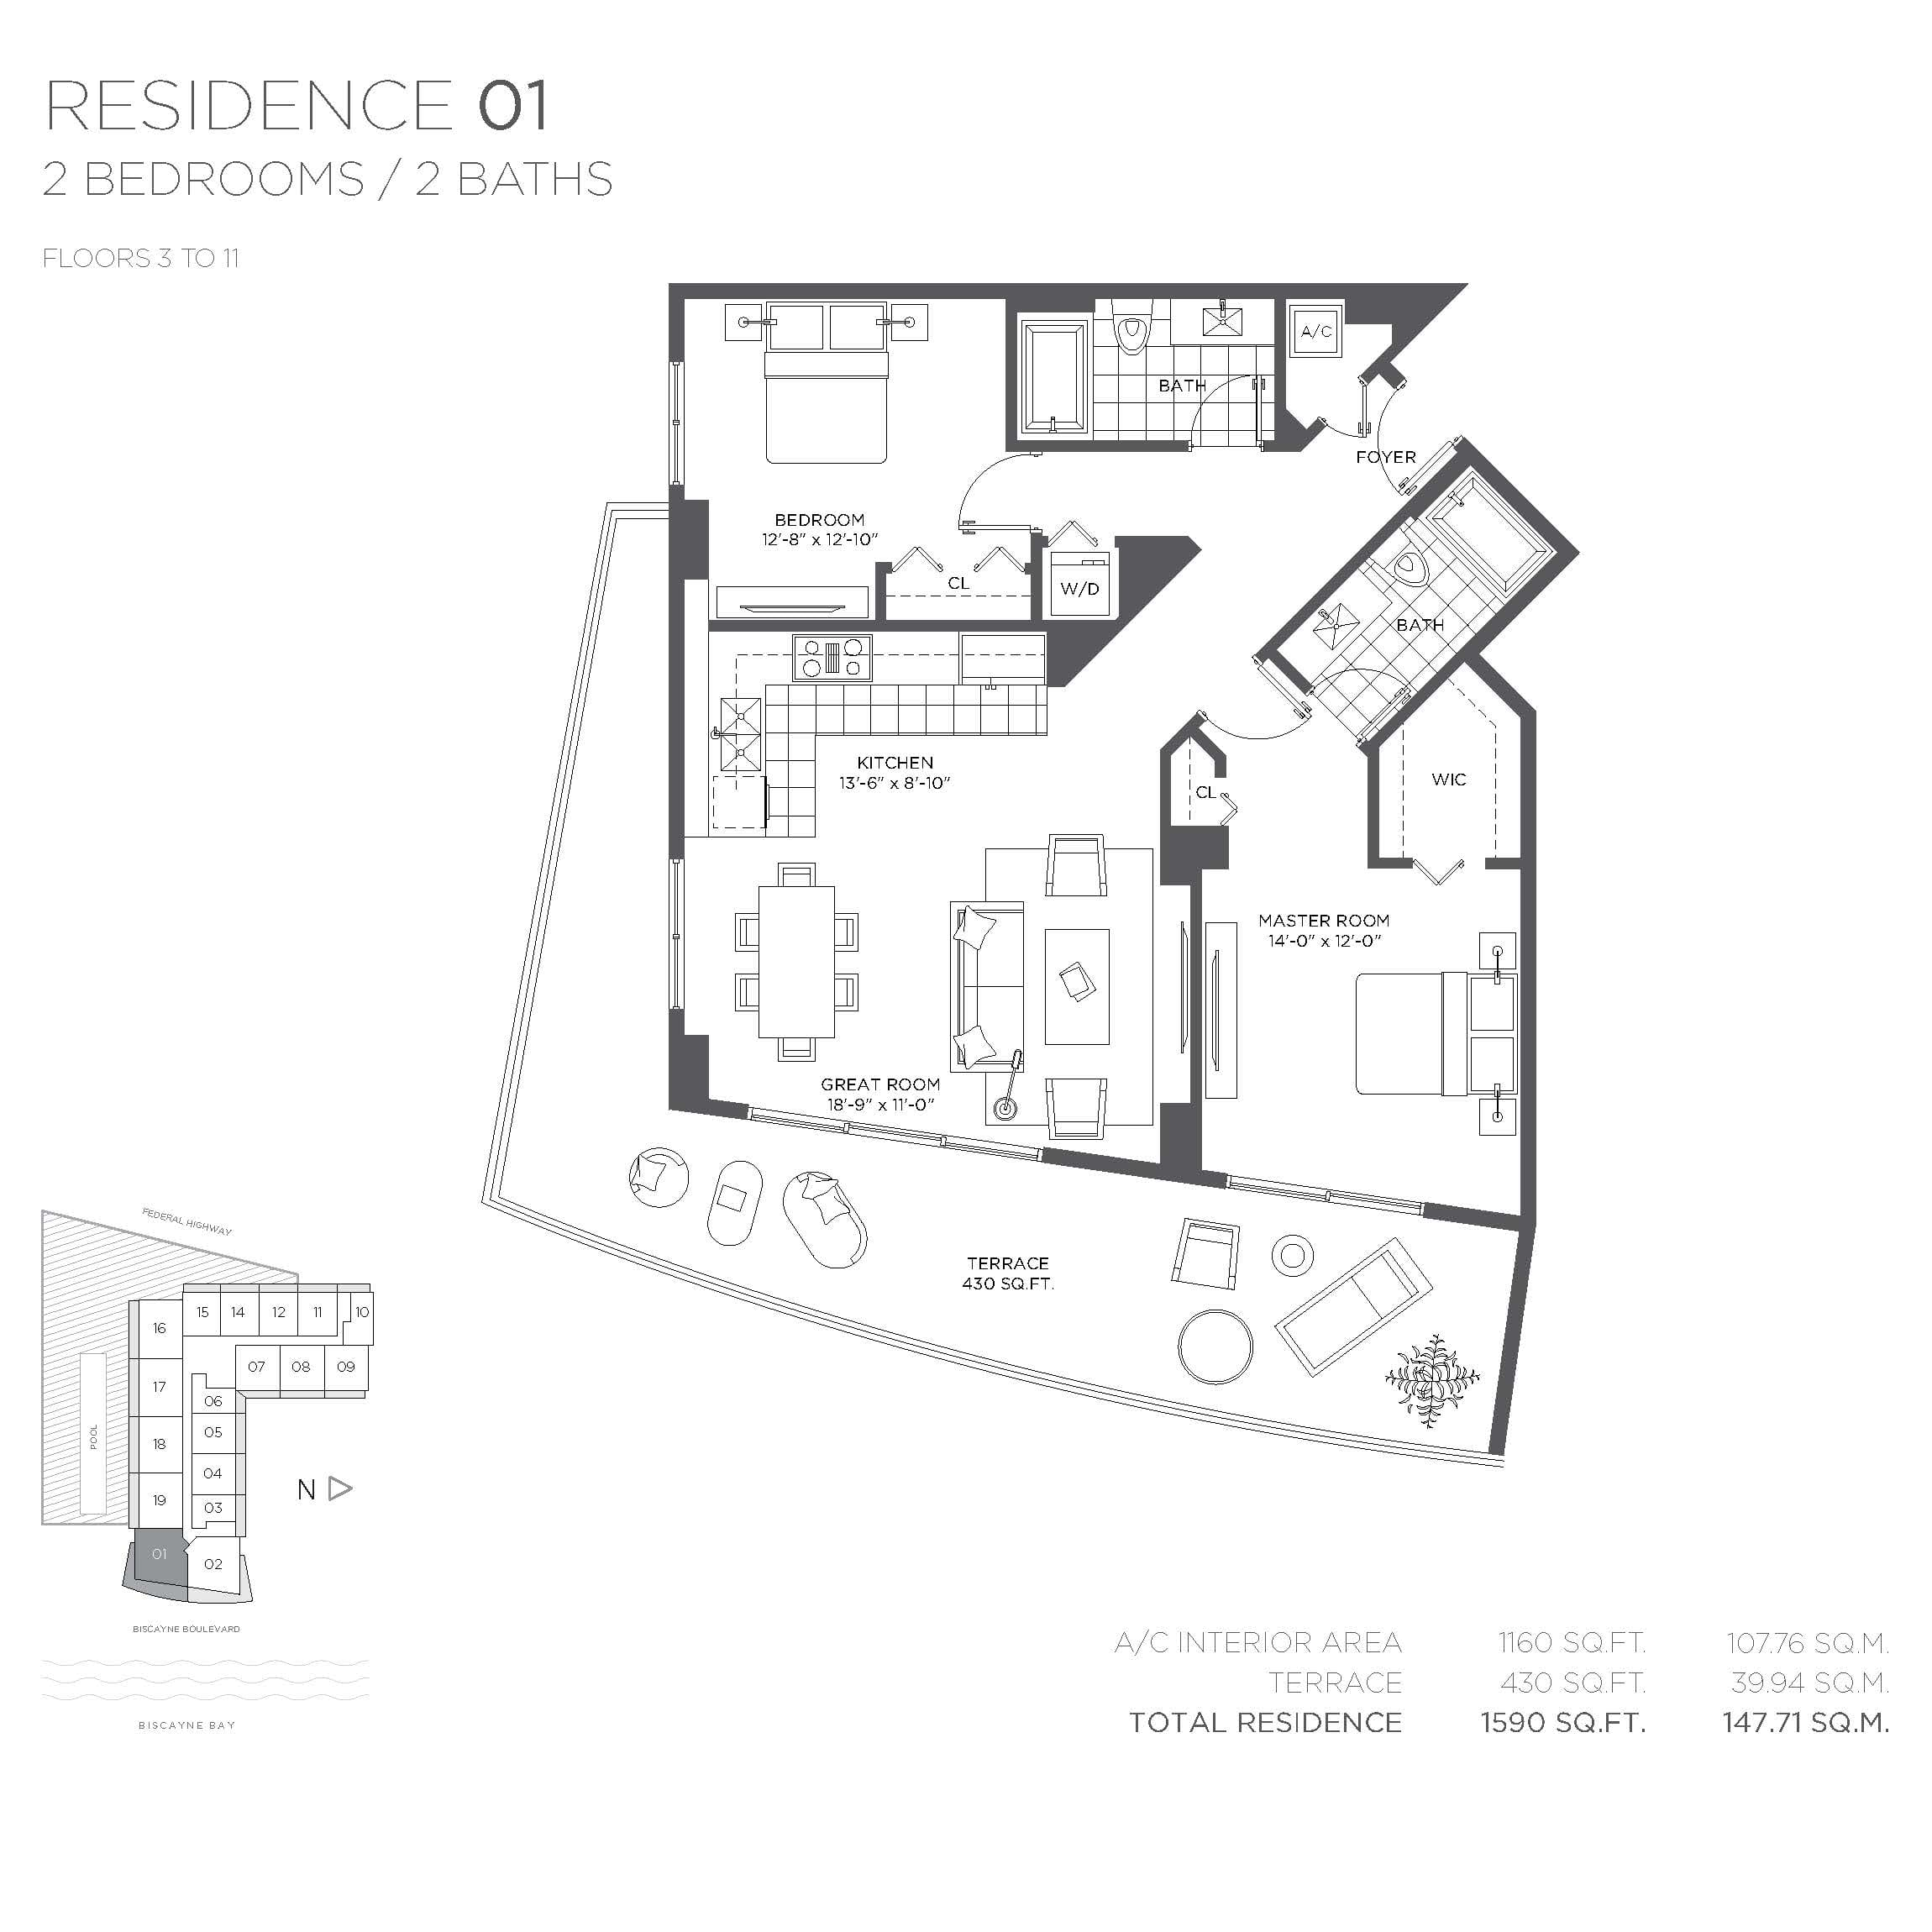 2BED-01_LOWER_FLOOR